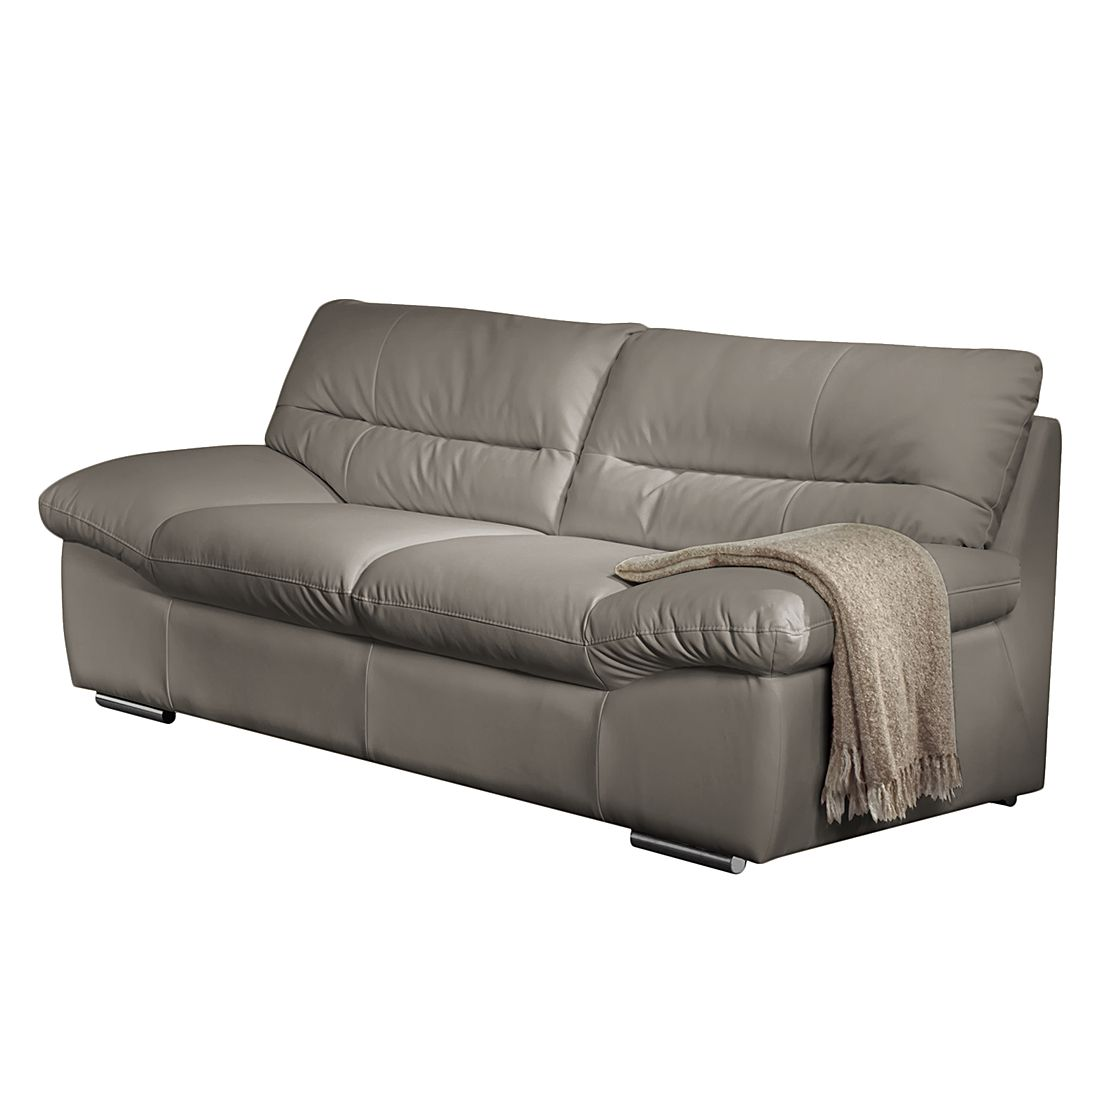 Relaxsessel Bei Roller Couch Gnstig Kaufen. Bettsofa Schlafcouch Sofa Couch